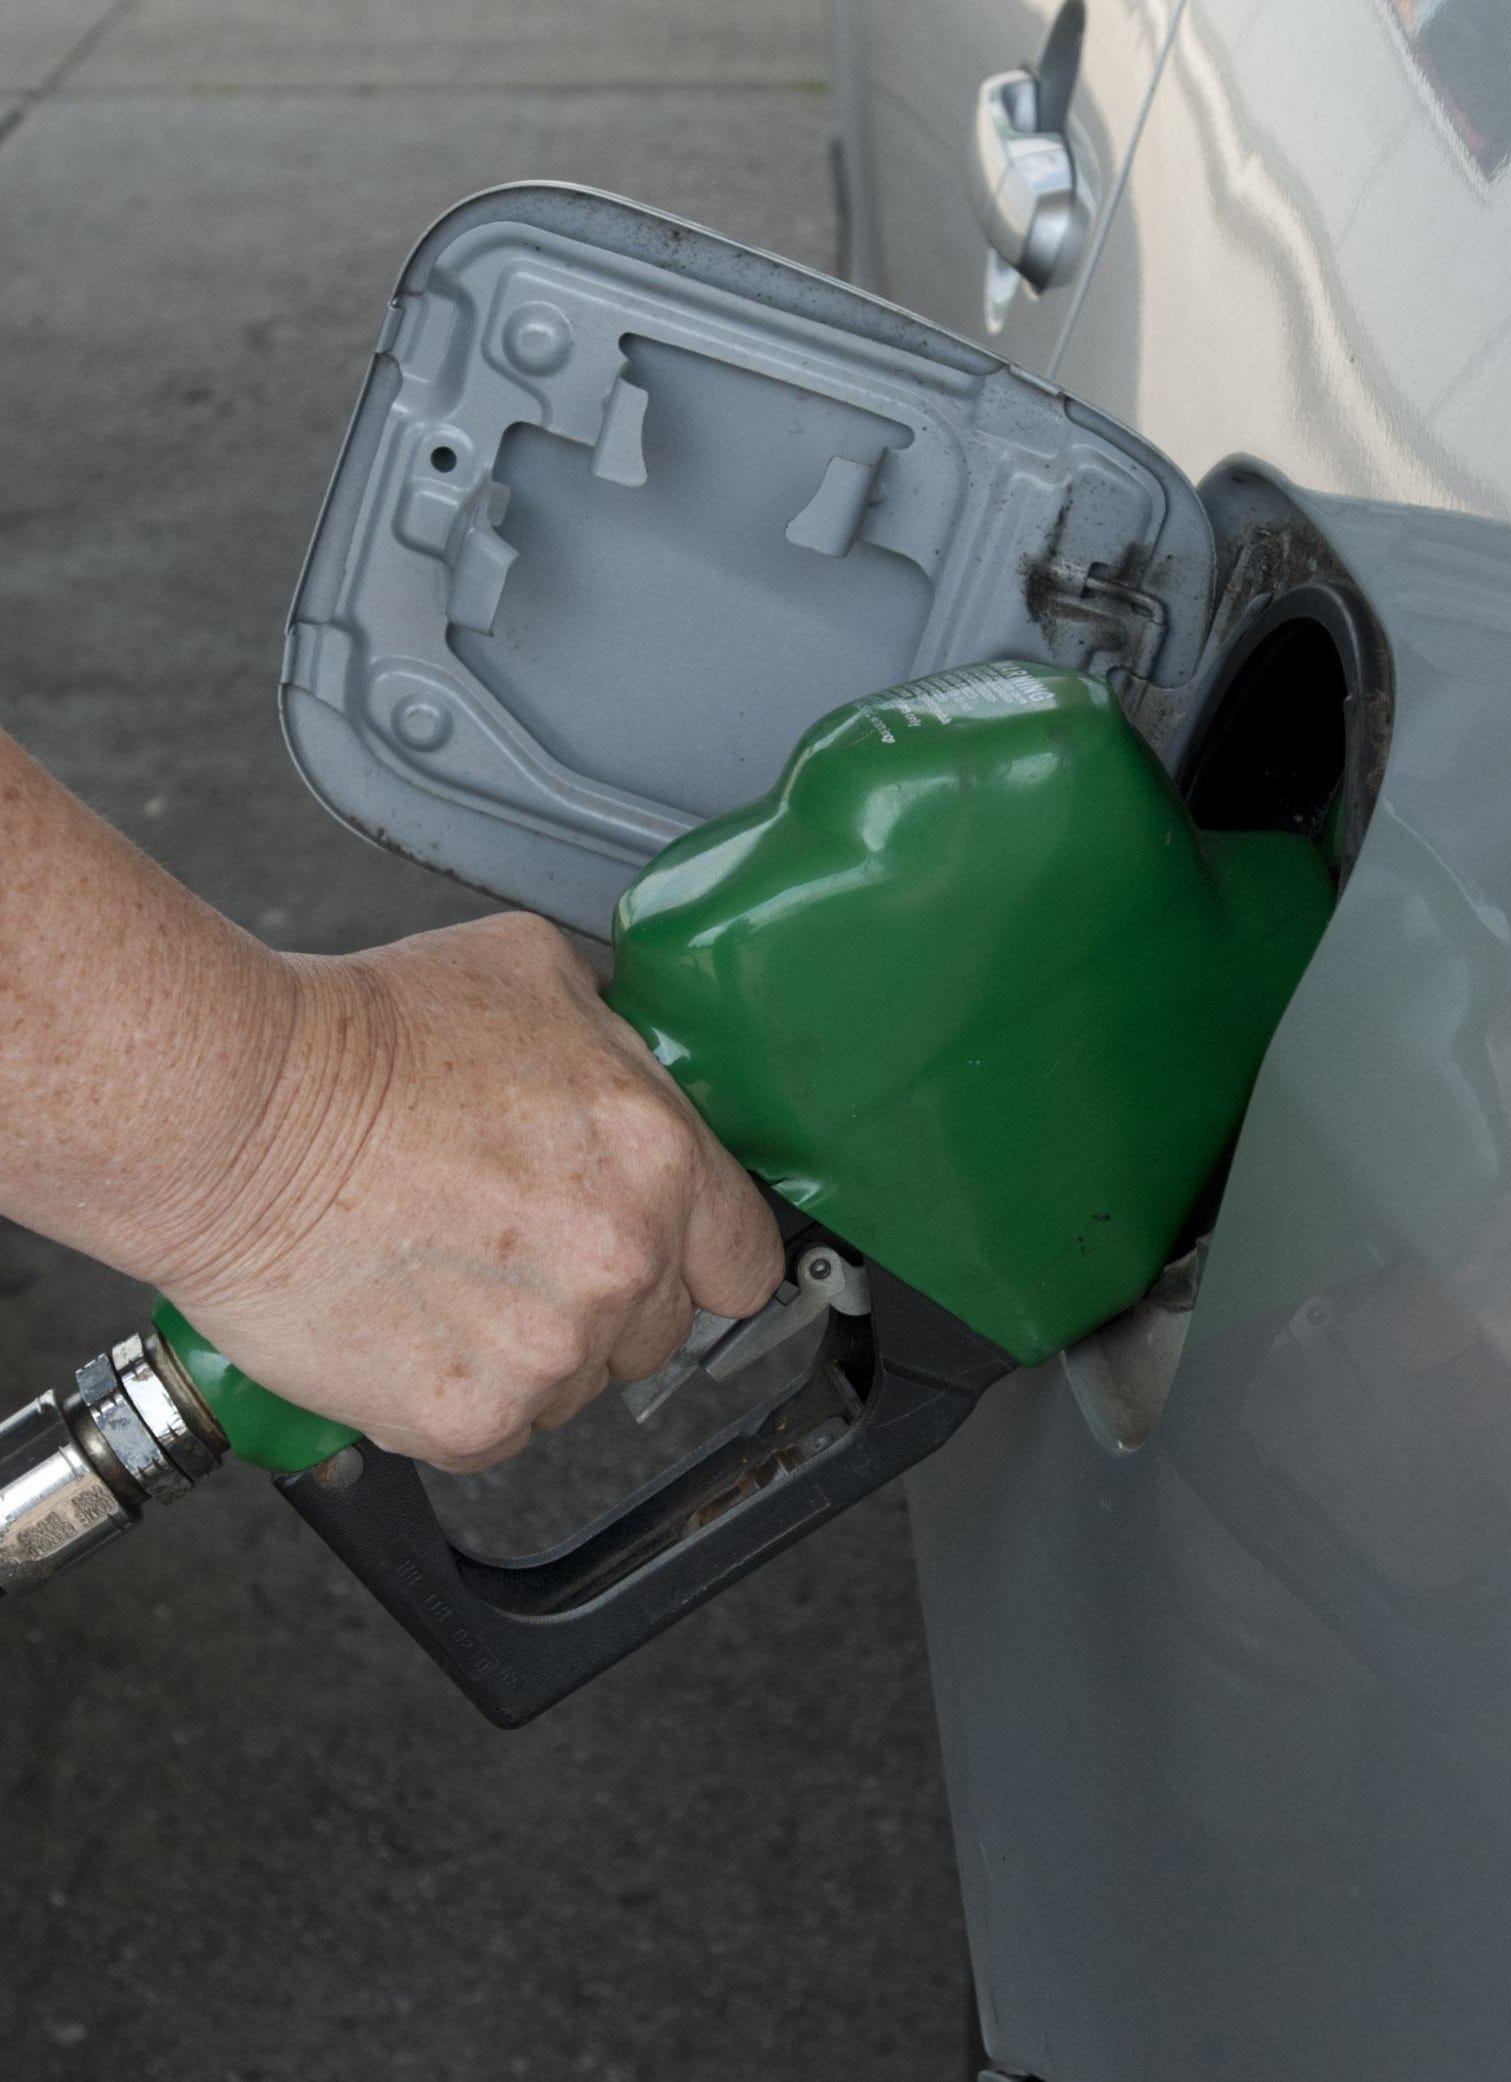 Michiganians drive an average of 14,121 miles per year. The average vehicle fuel economy for 2017 model-year vehicles was 24.9 miles per gallon. Do the math, and Governor Whitmer's proposed 45-cent surcharge would add up to $255 per year.